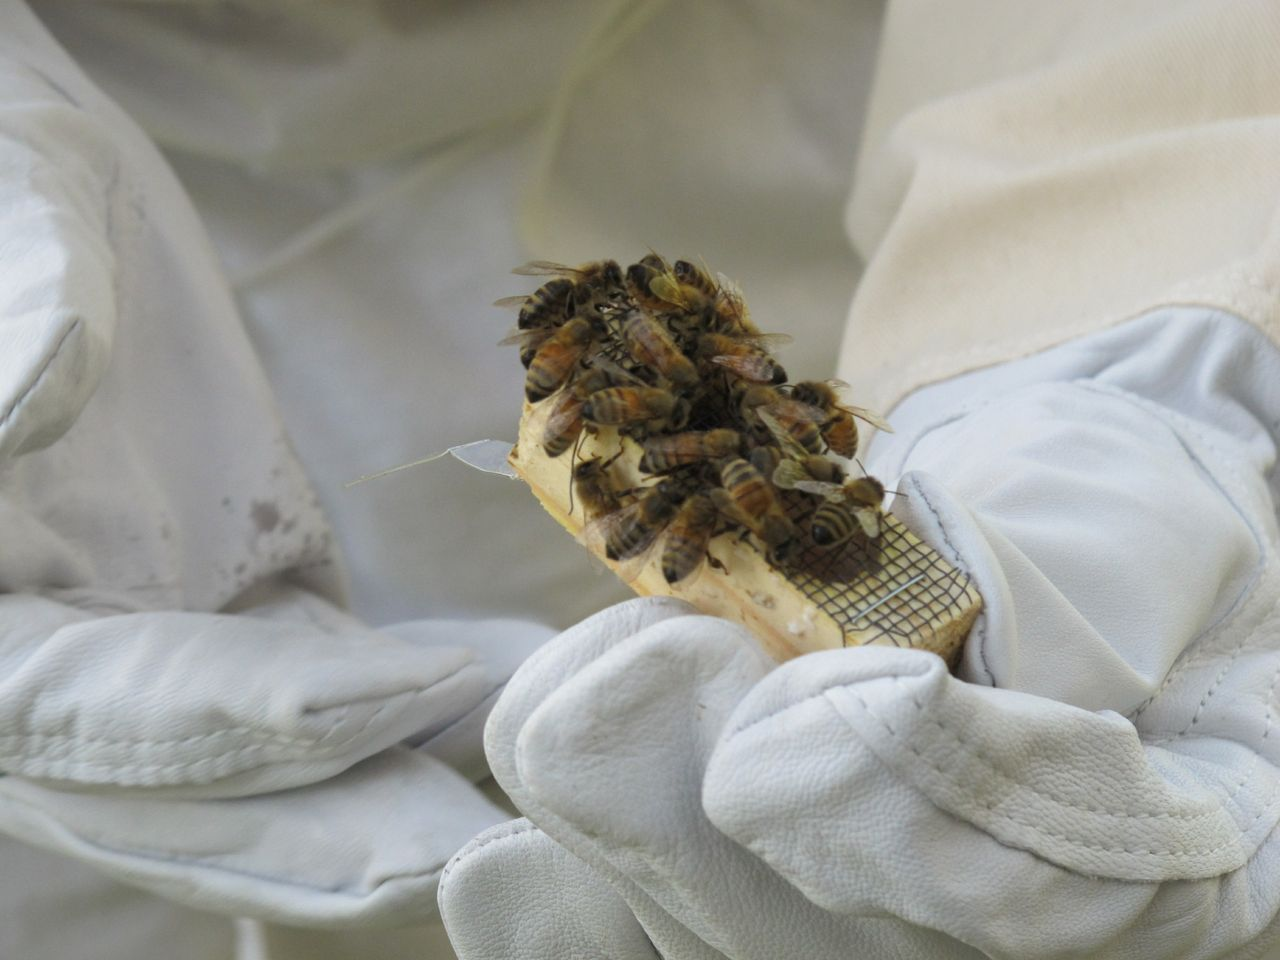 Bees - queen cage with workers clustered around the queen inside before she's released - courtesy Doug Mendonca